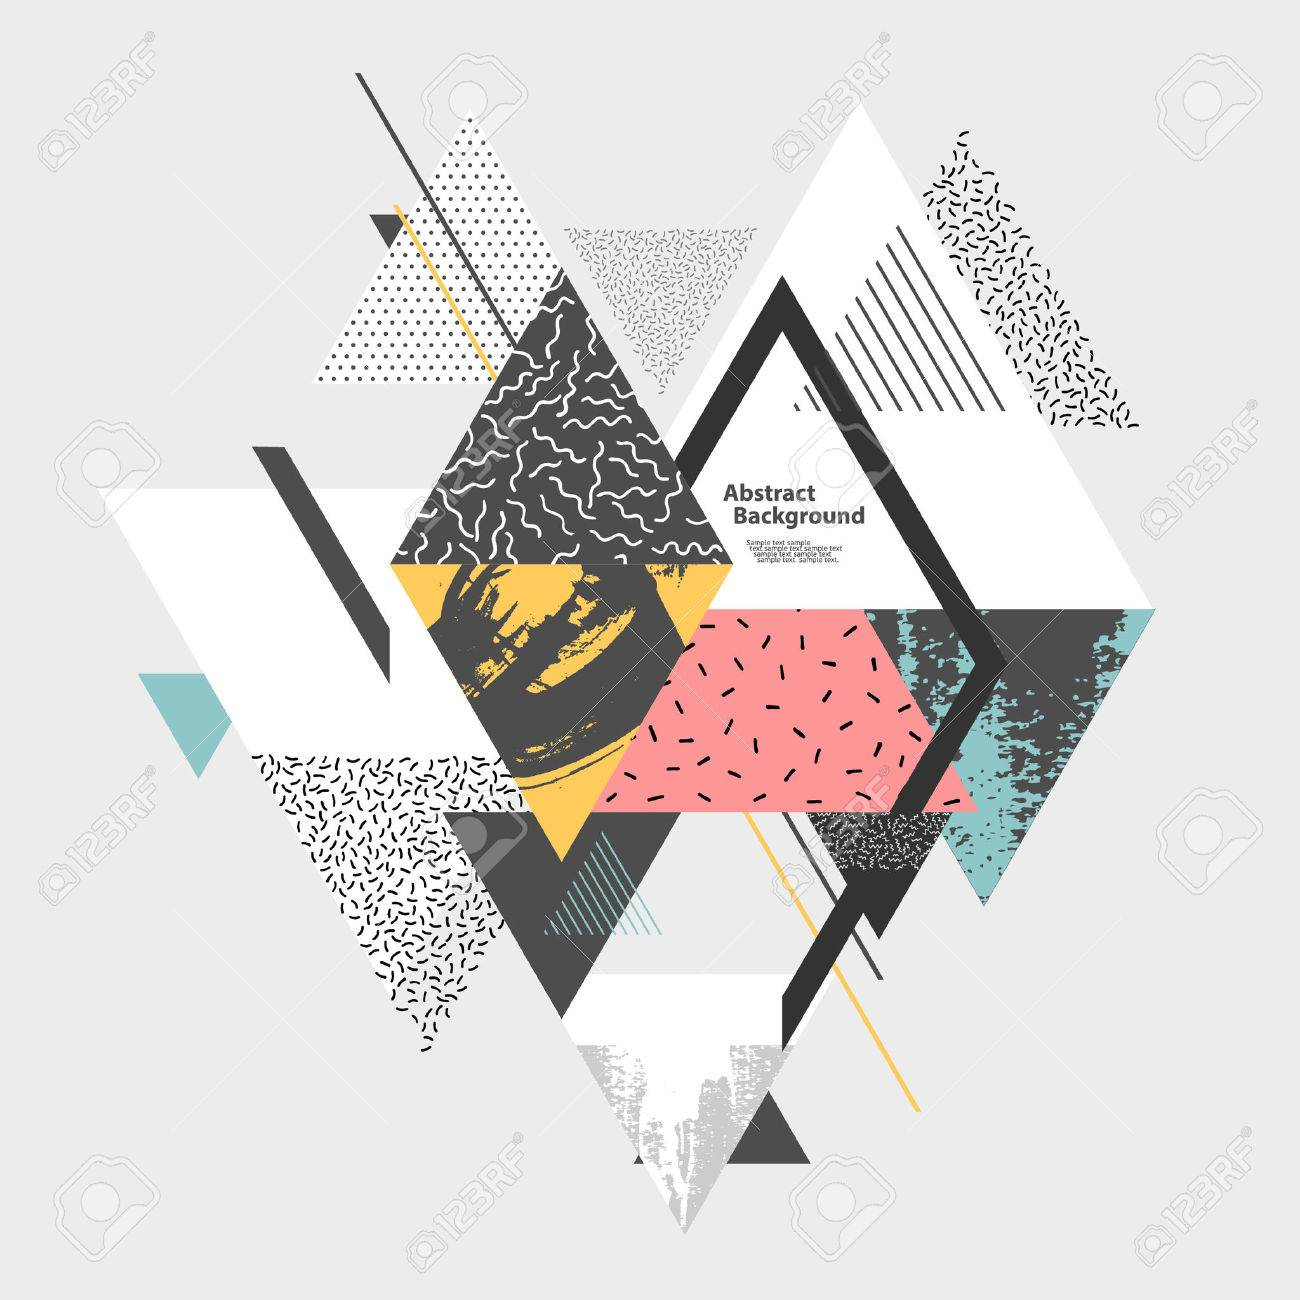 Abstract art background with geometric elements - 54352914